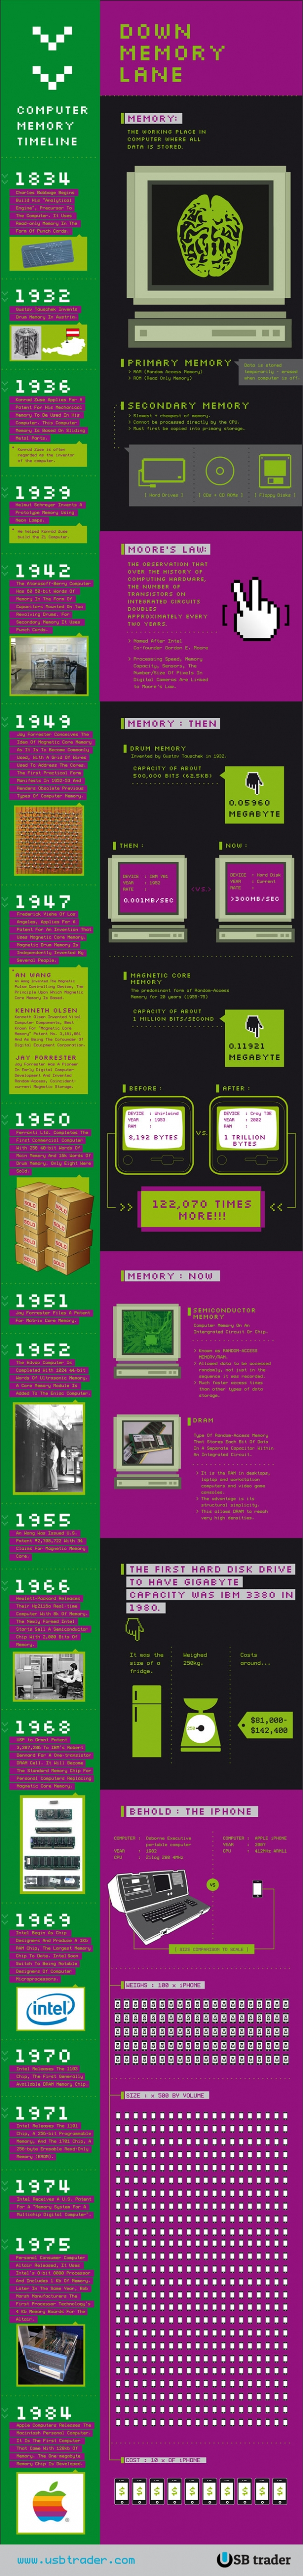 The history of computer memory - Infographic